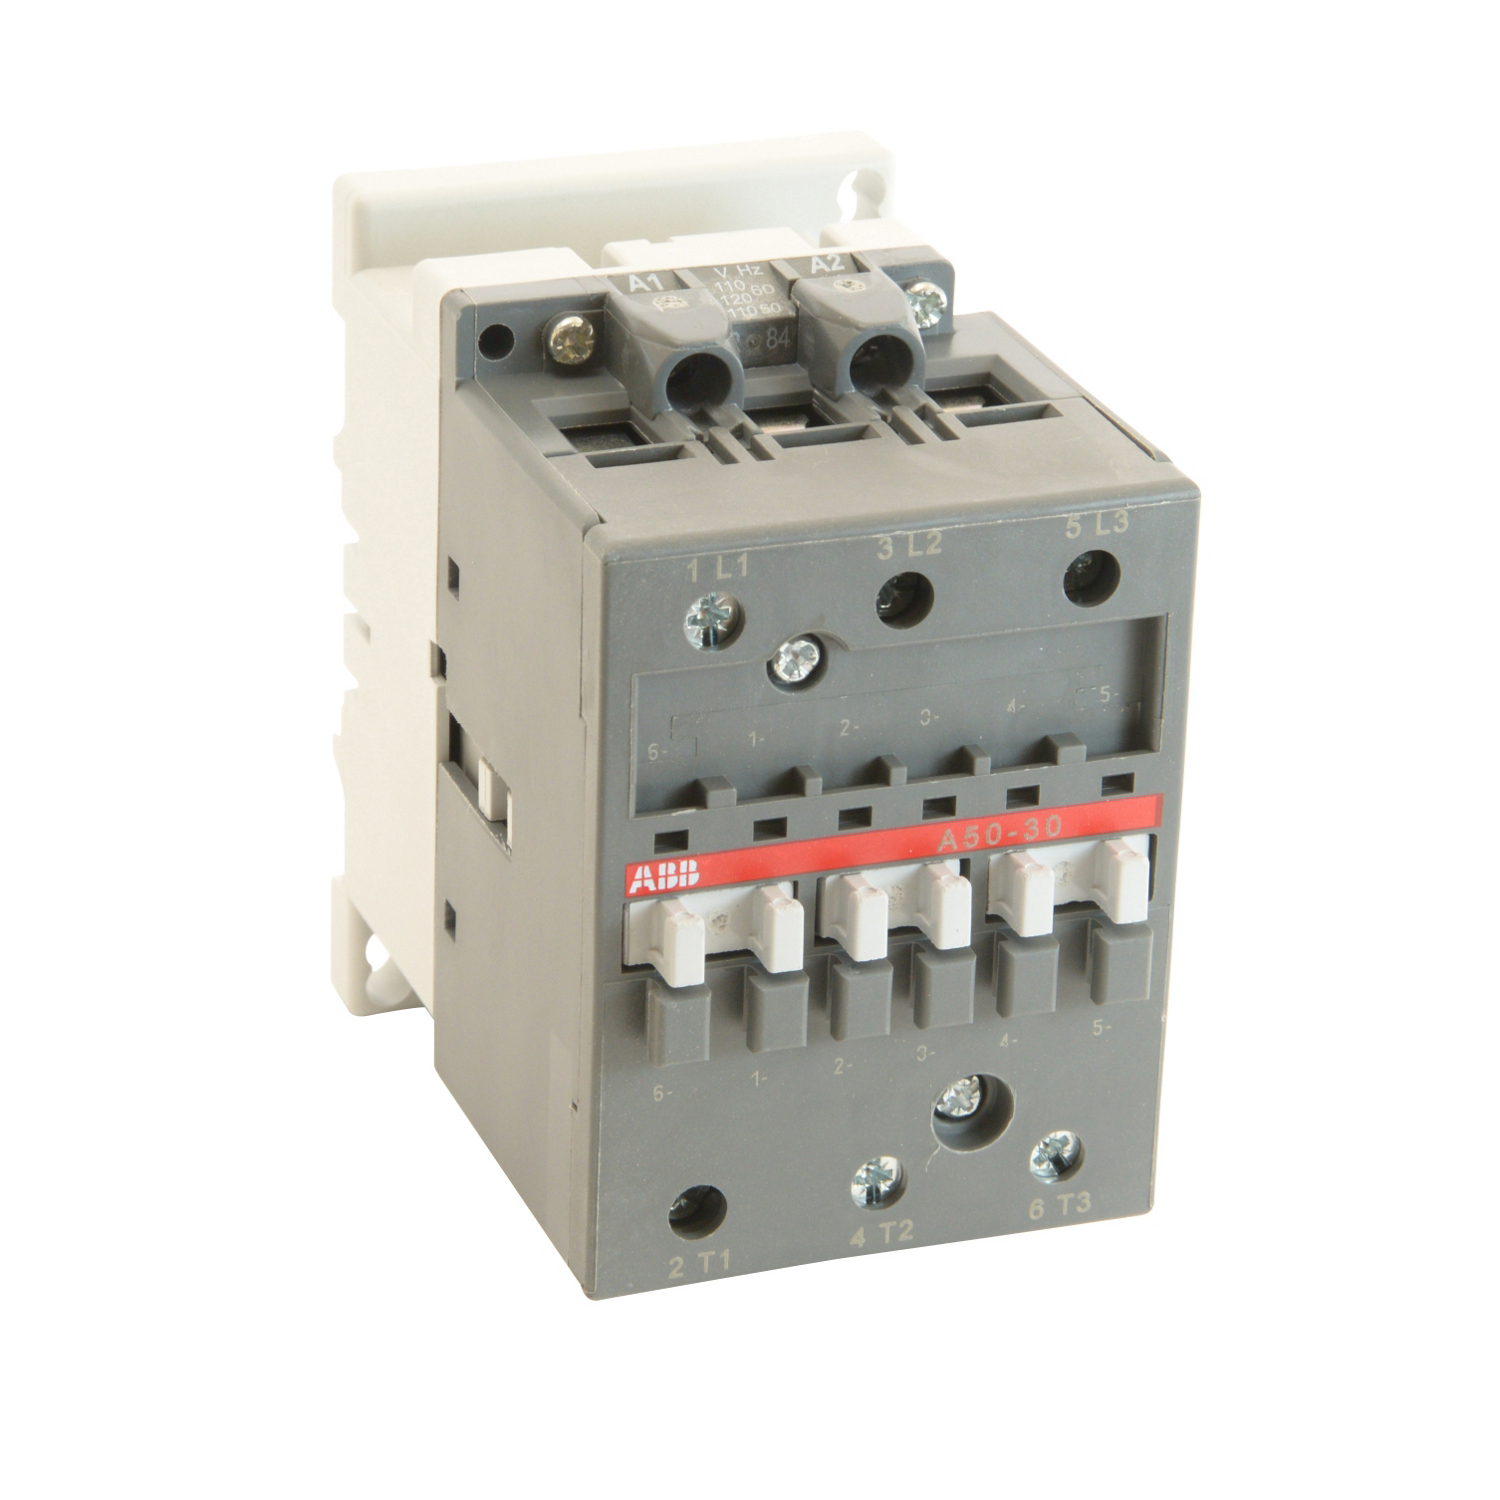 Abb A5030 Contactor Wiring Diagrams - Trusted Wiring Diagram